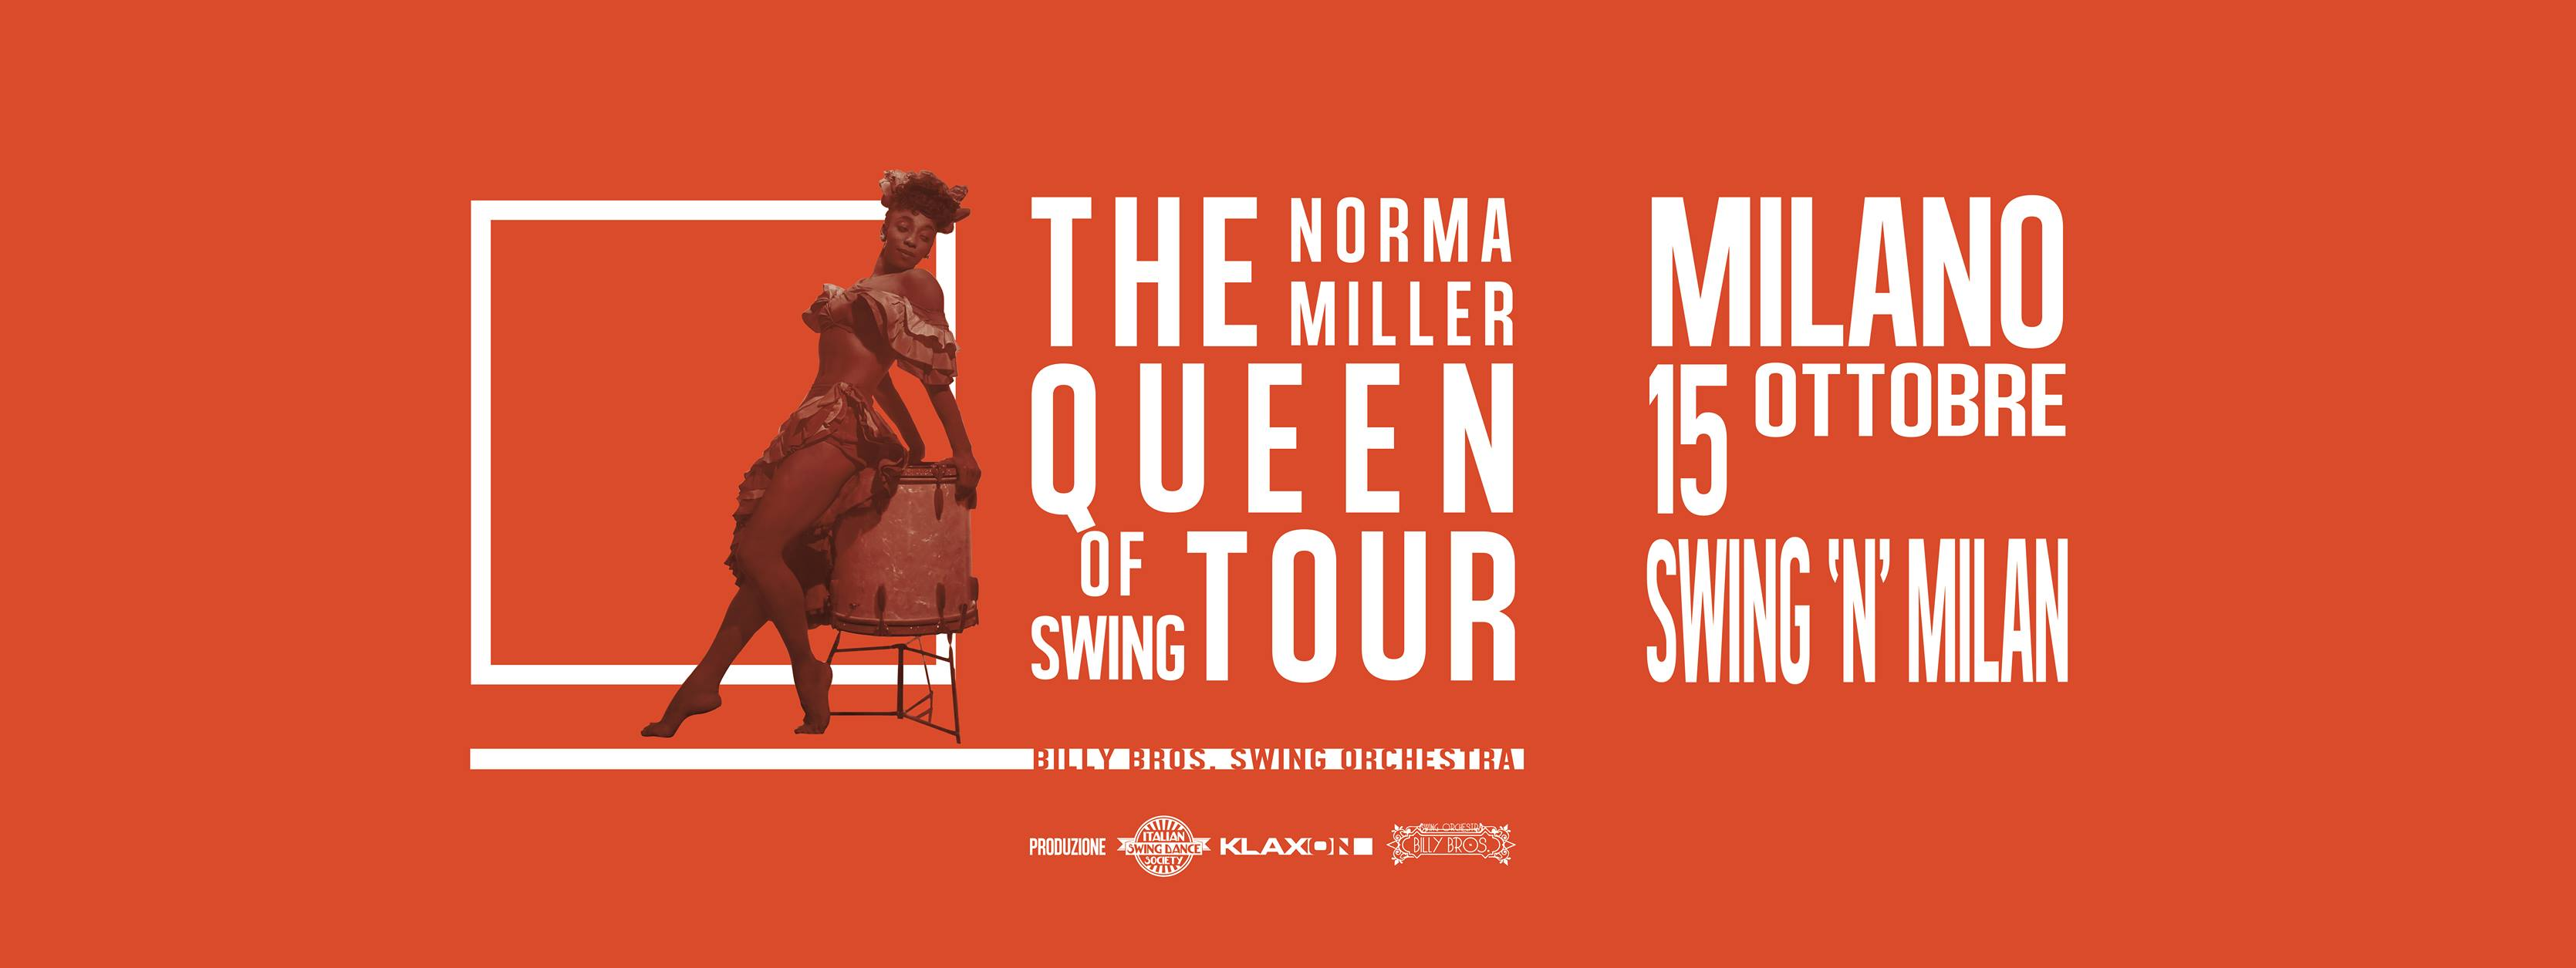 The queen of swing tour – Norma Miller